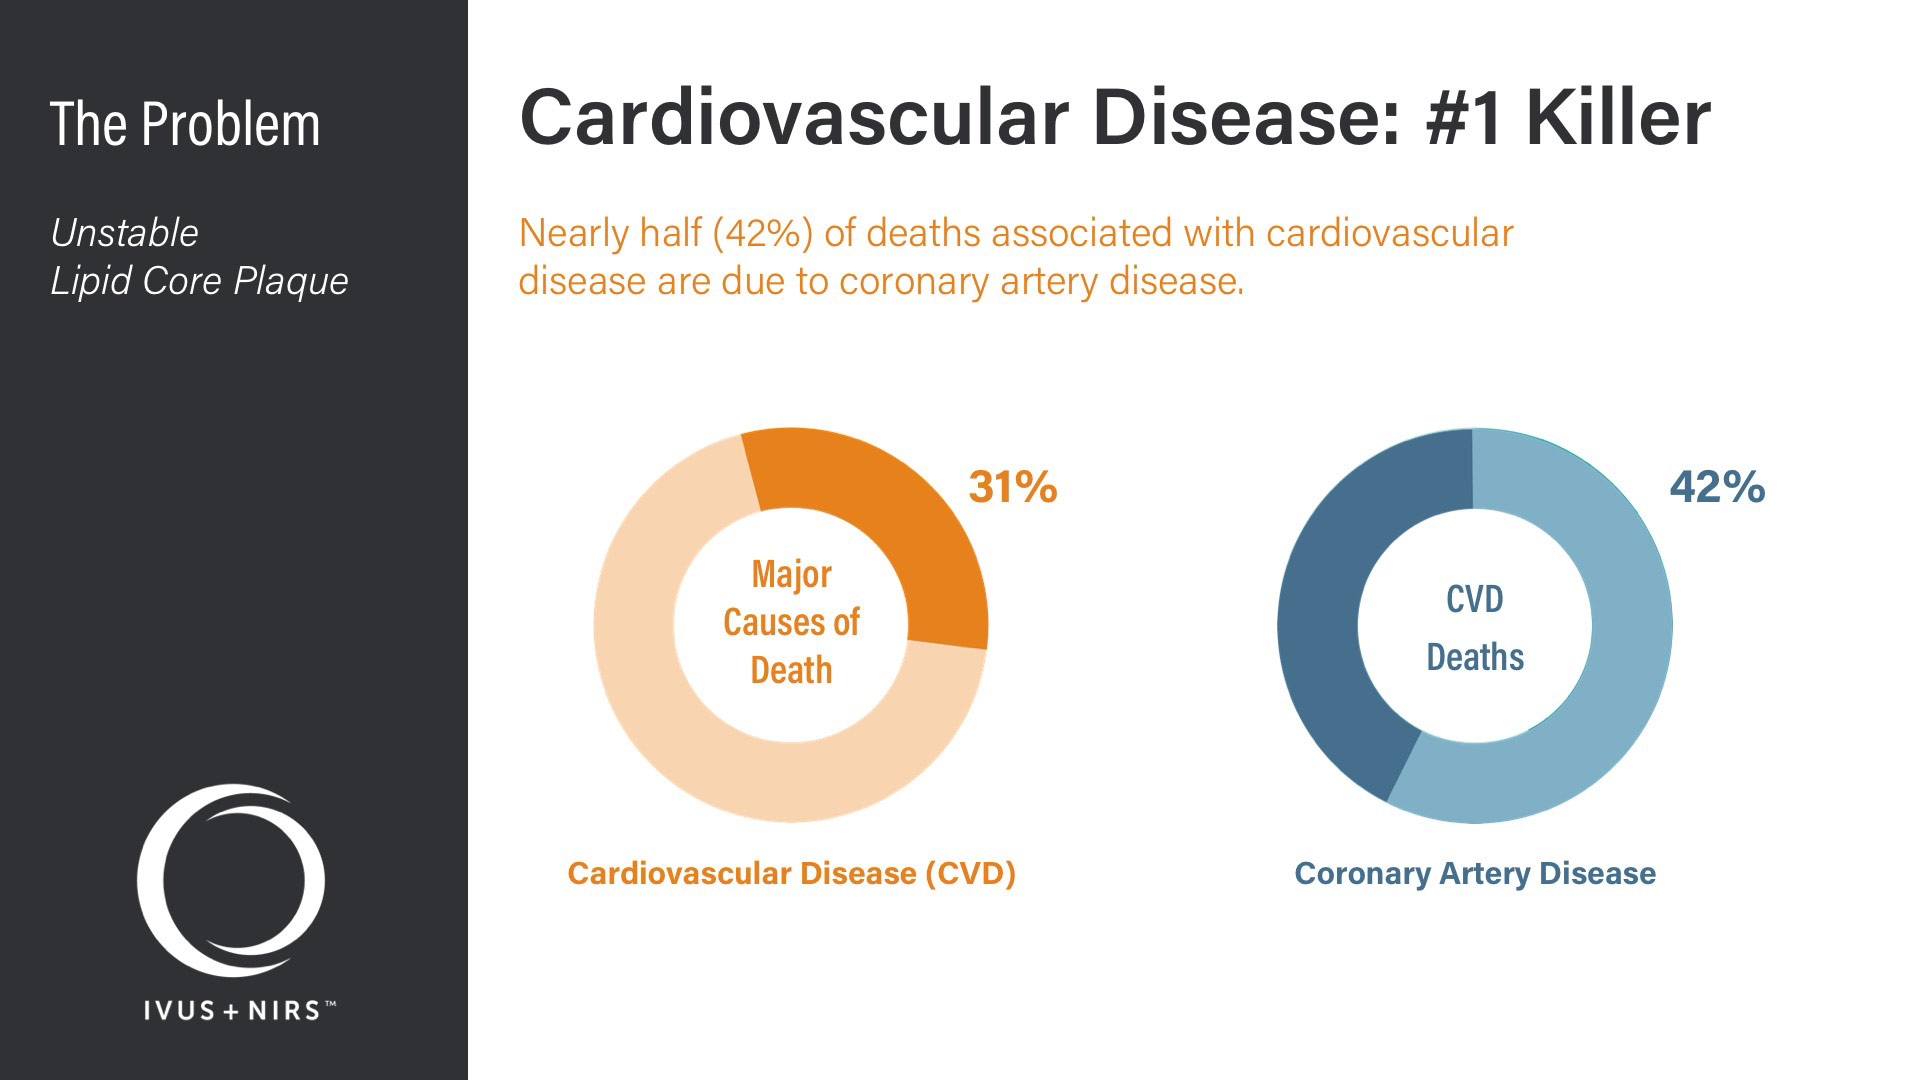 Infraredx Corporate Deck - Problem - Cardiovascular Disease: #1 Killer - 42% of Cardiovascular Disease due to Coronary Artery Disease